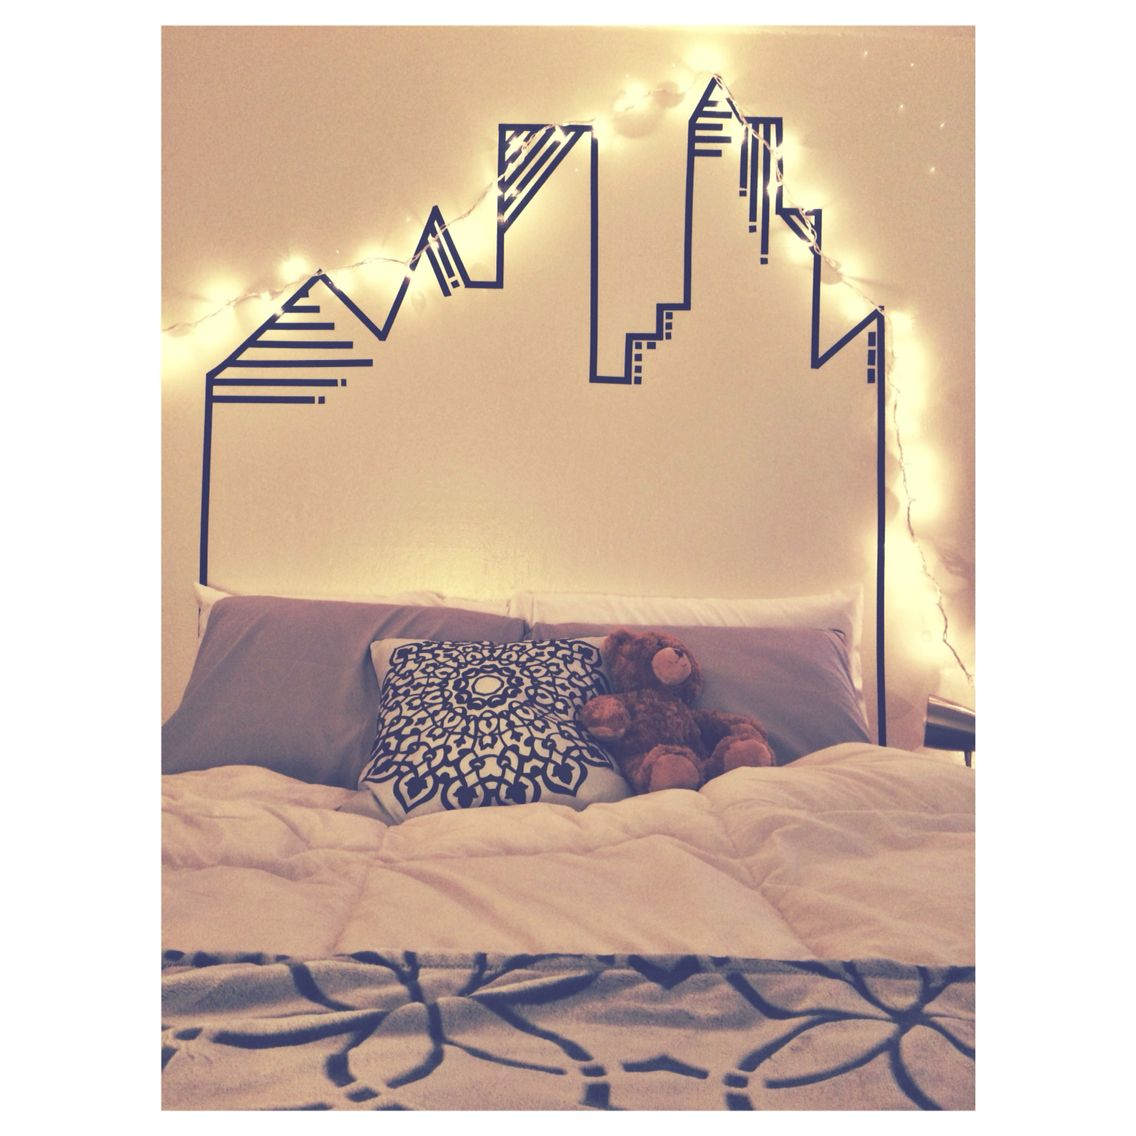 Washi tape skyline headboard wall decoration | Apartment | Pinterest ...